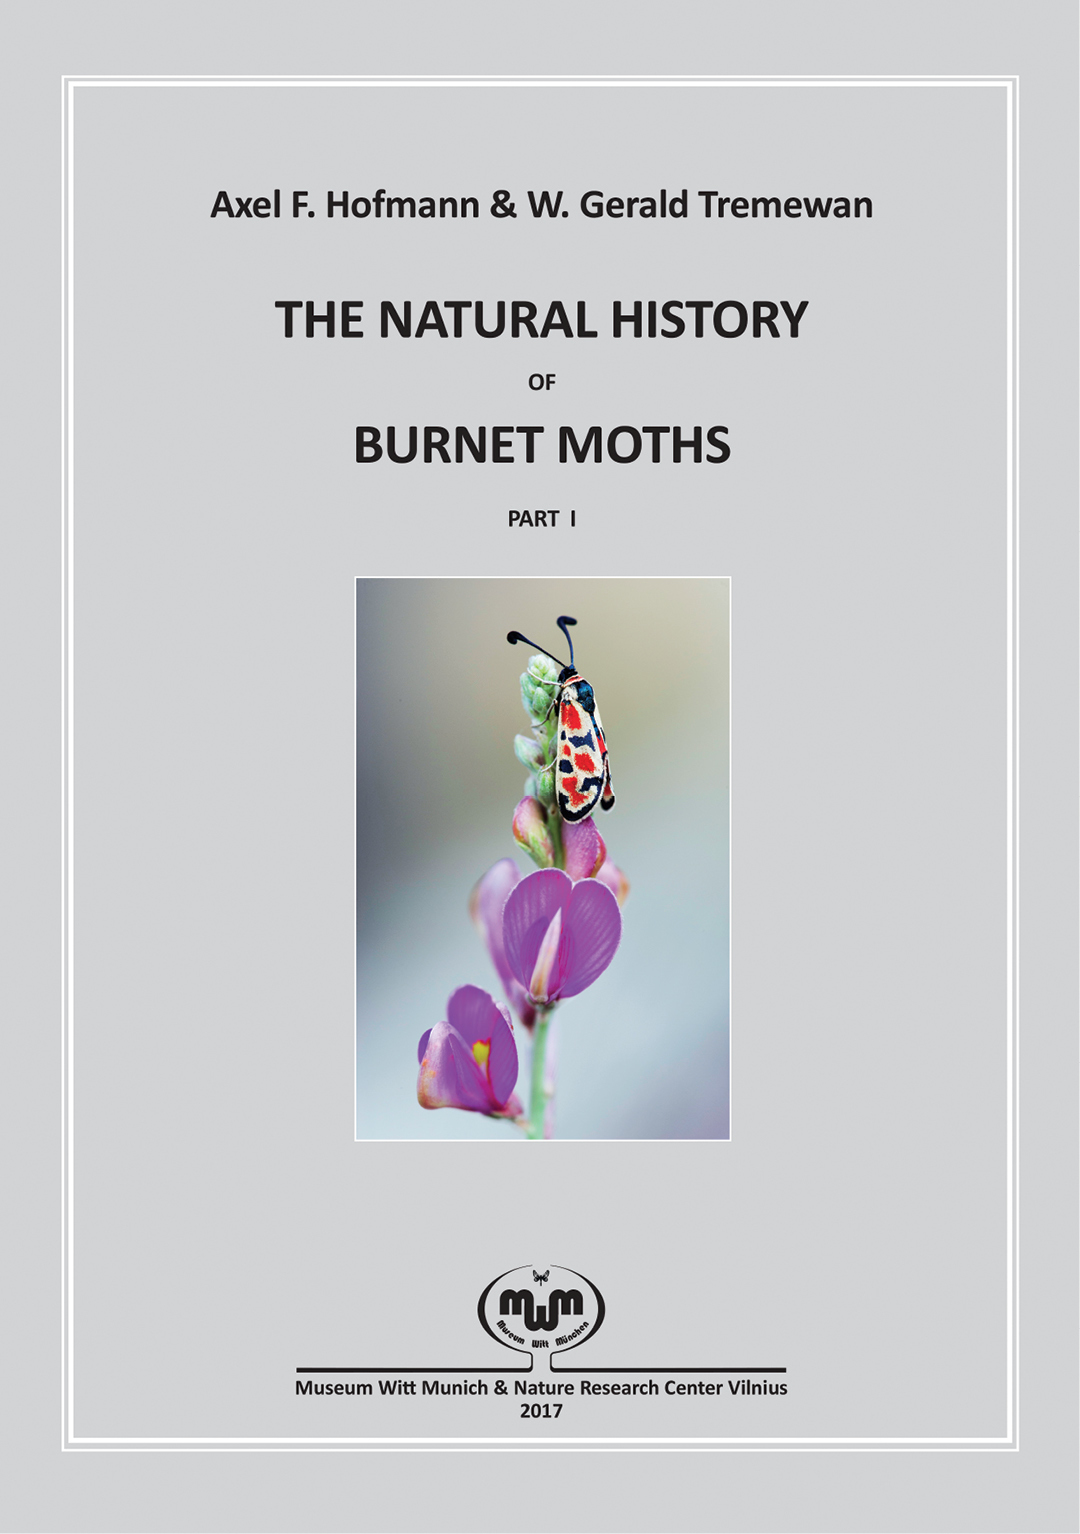 The Natural History of Burnet Moths - OUVRAGE SPECIALISÉ - NOUVEAU Showimg.php?filename=oo_166351